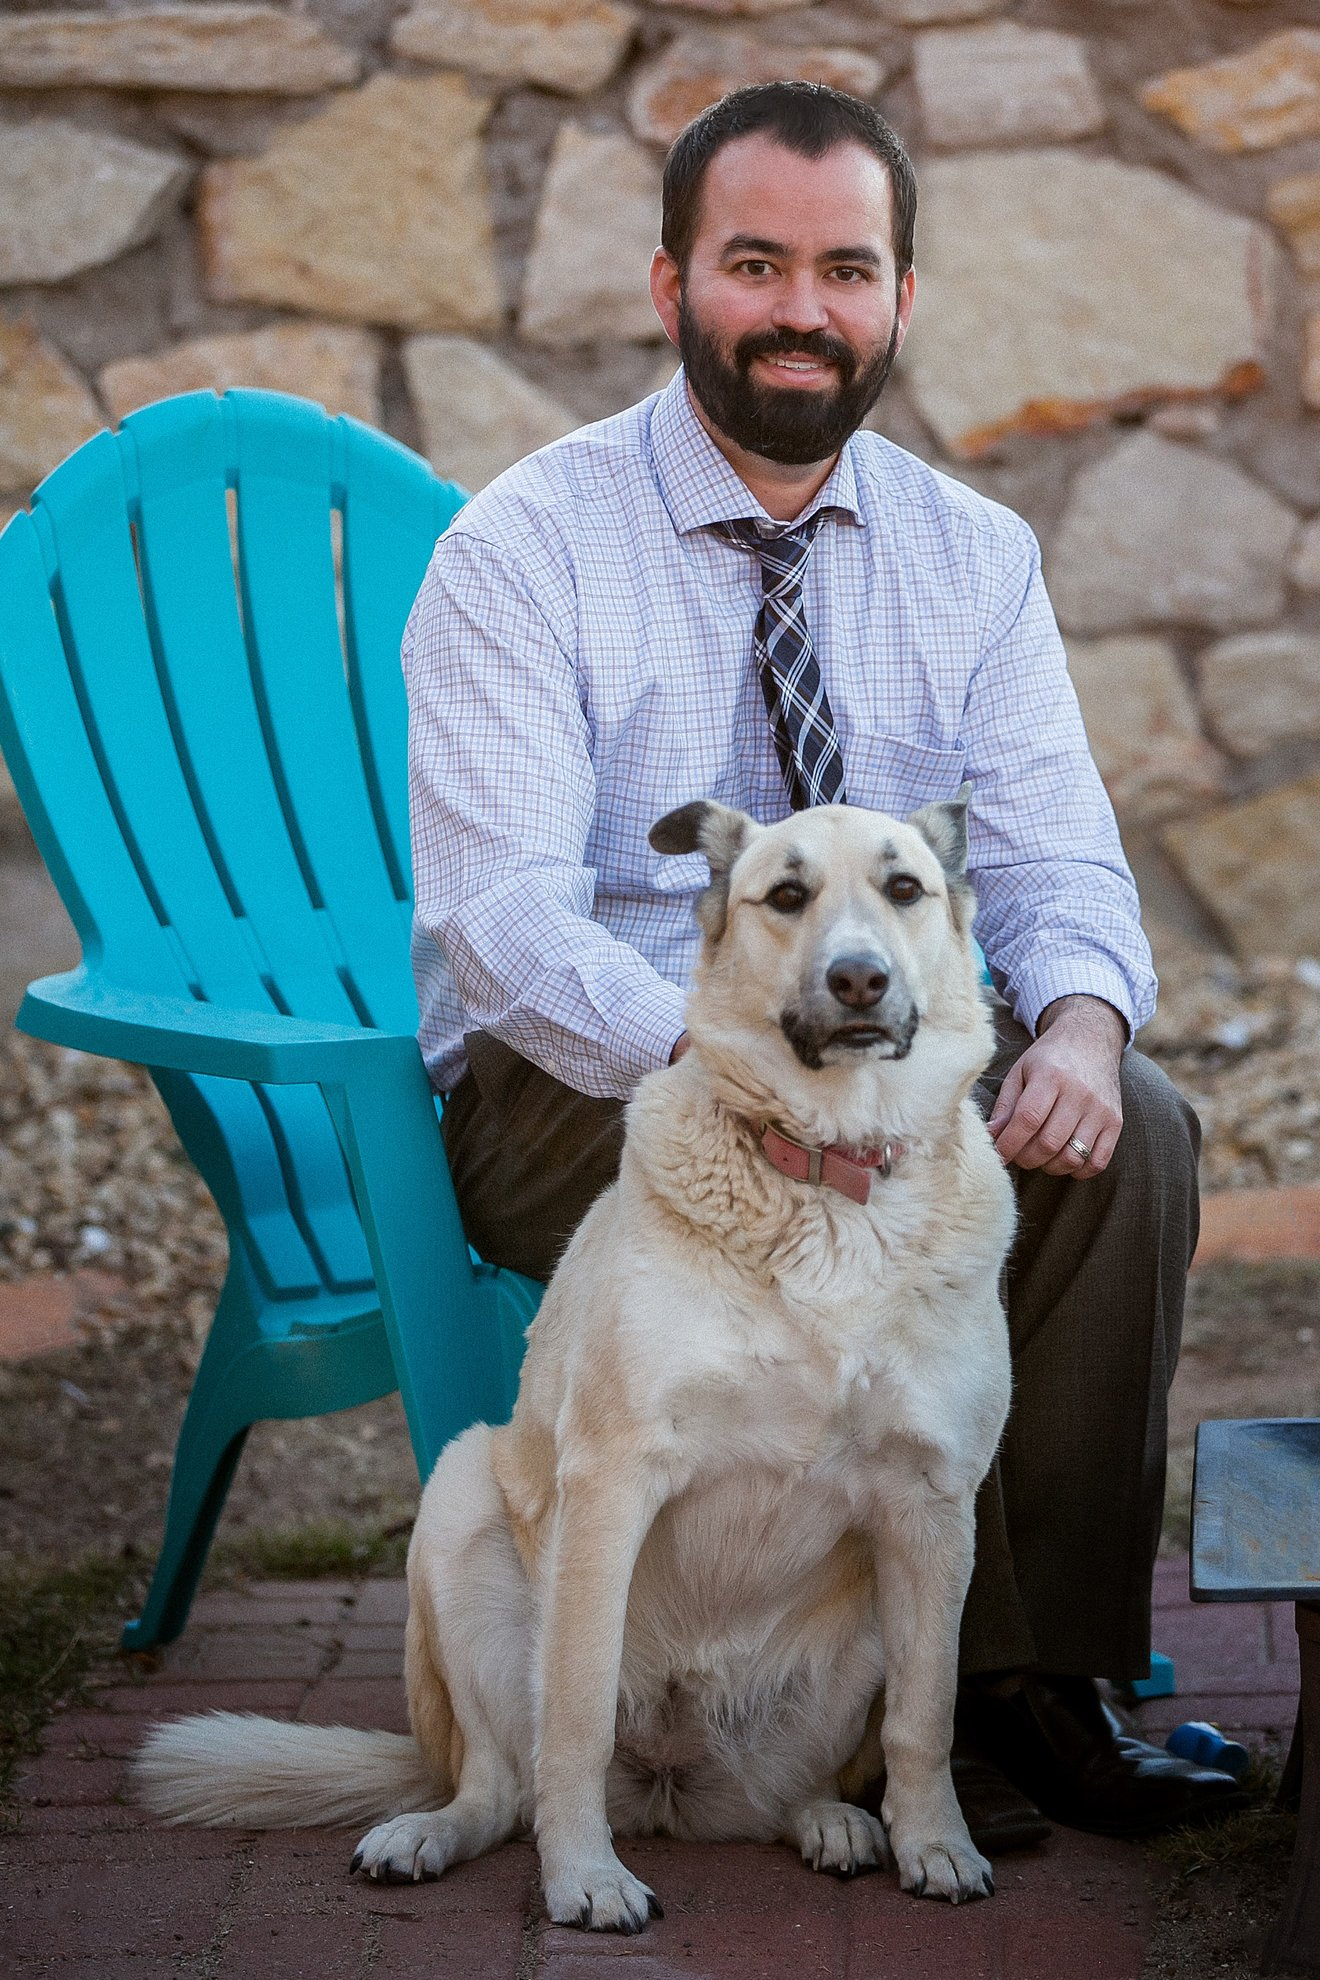 Humane Legislator Spotlight: Rep. Joe Moody